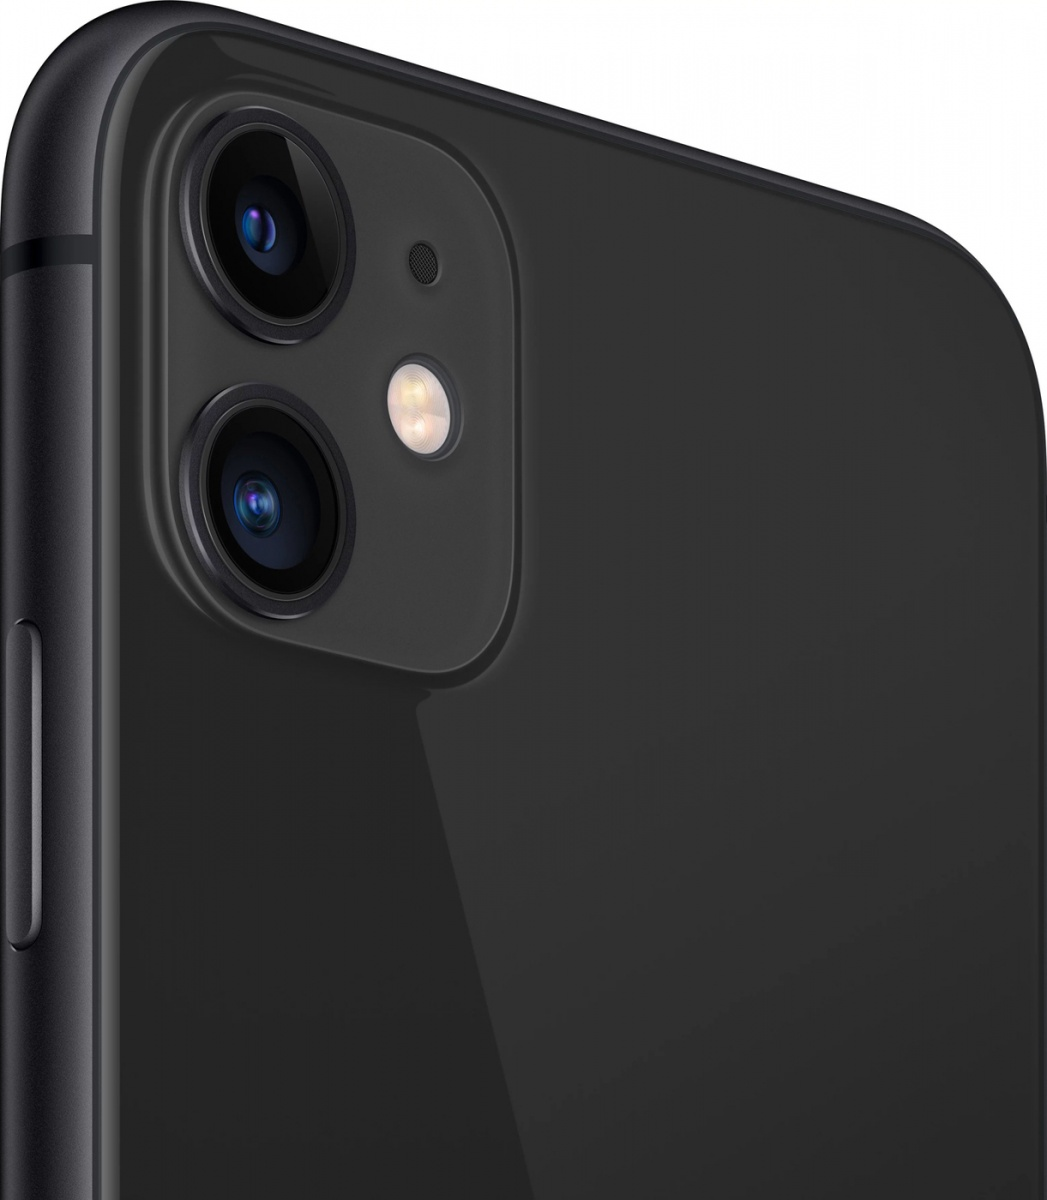 Смартфон Apple iPhone 11 Черный / 256 ГБ